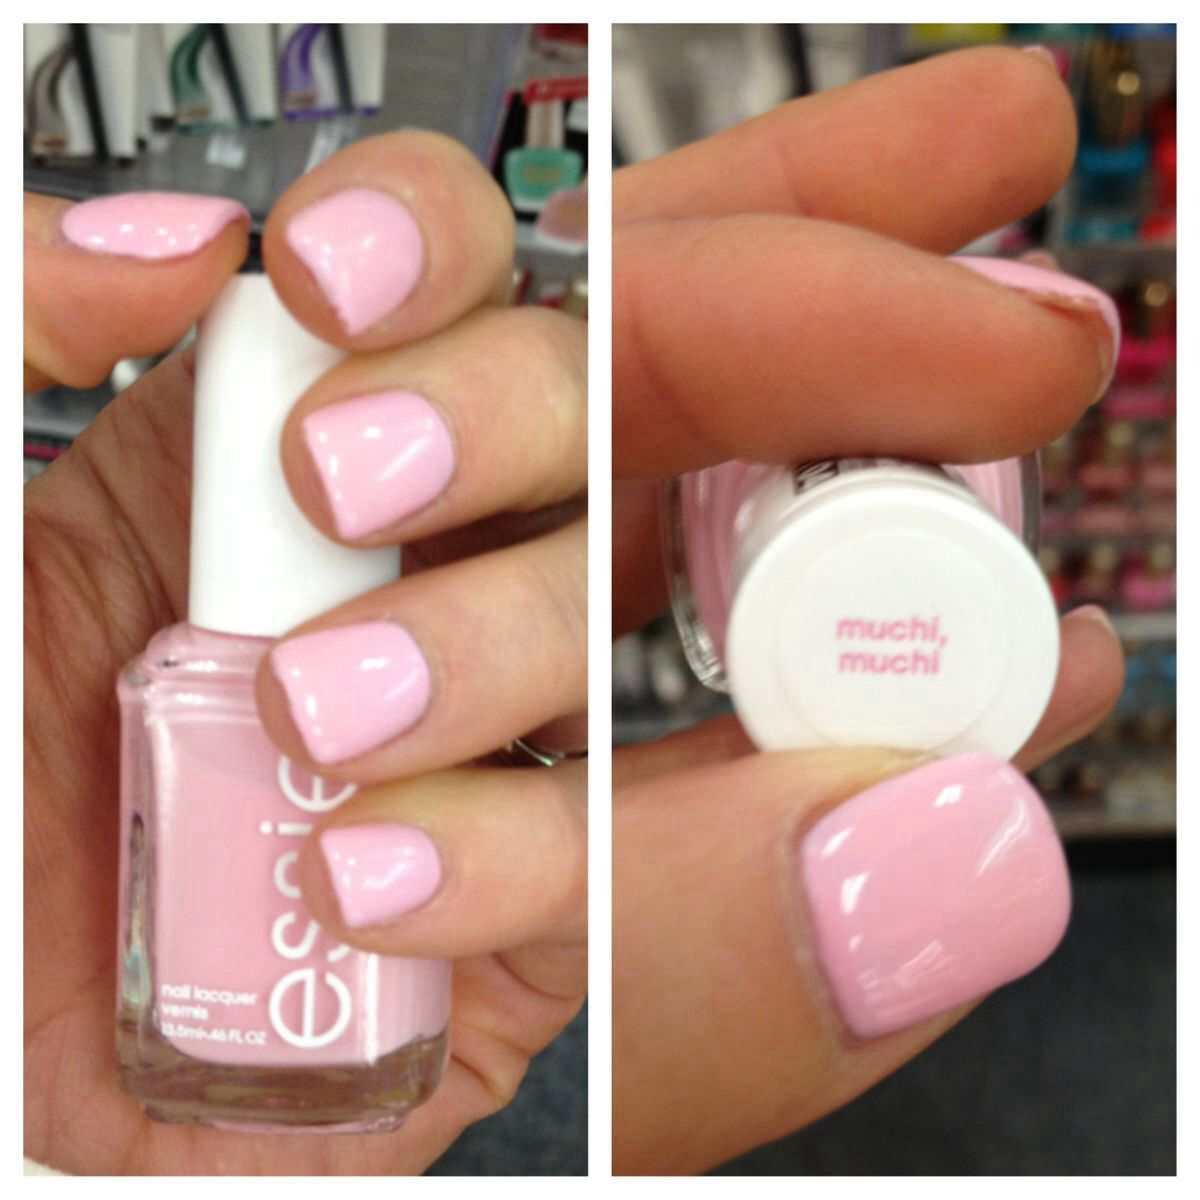 Baby Pink Nail Polish India: Still One Of The Best All Time Baby Pink Colors! Essie